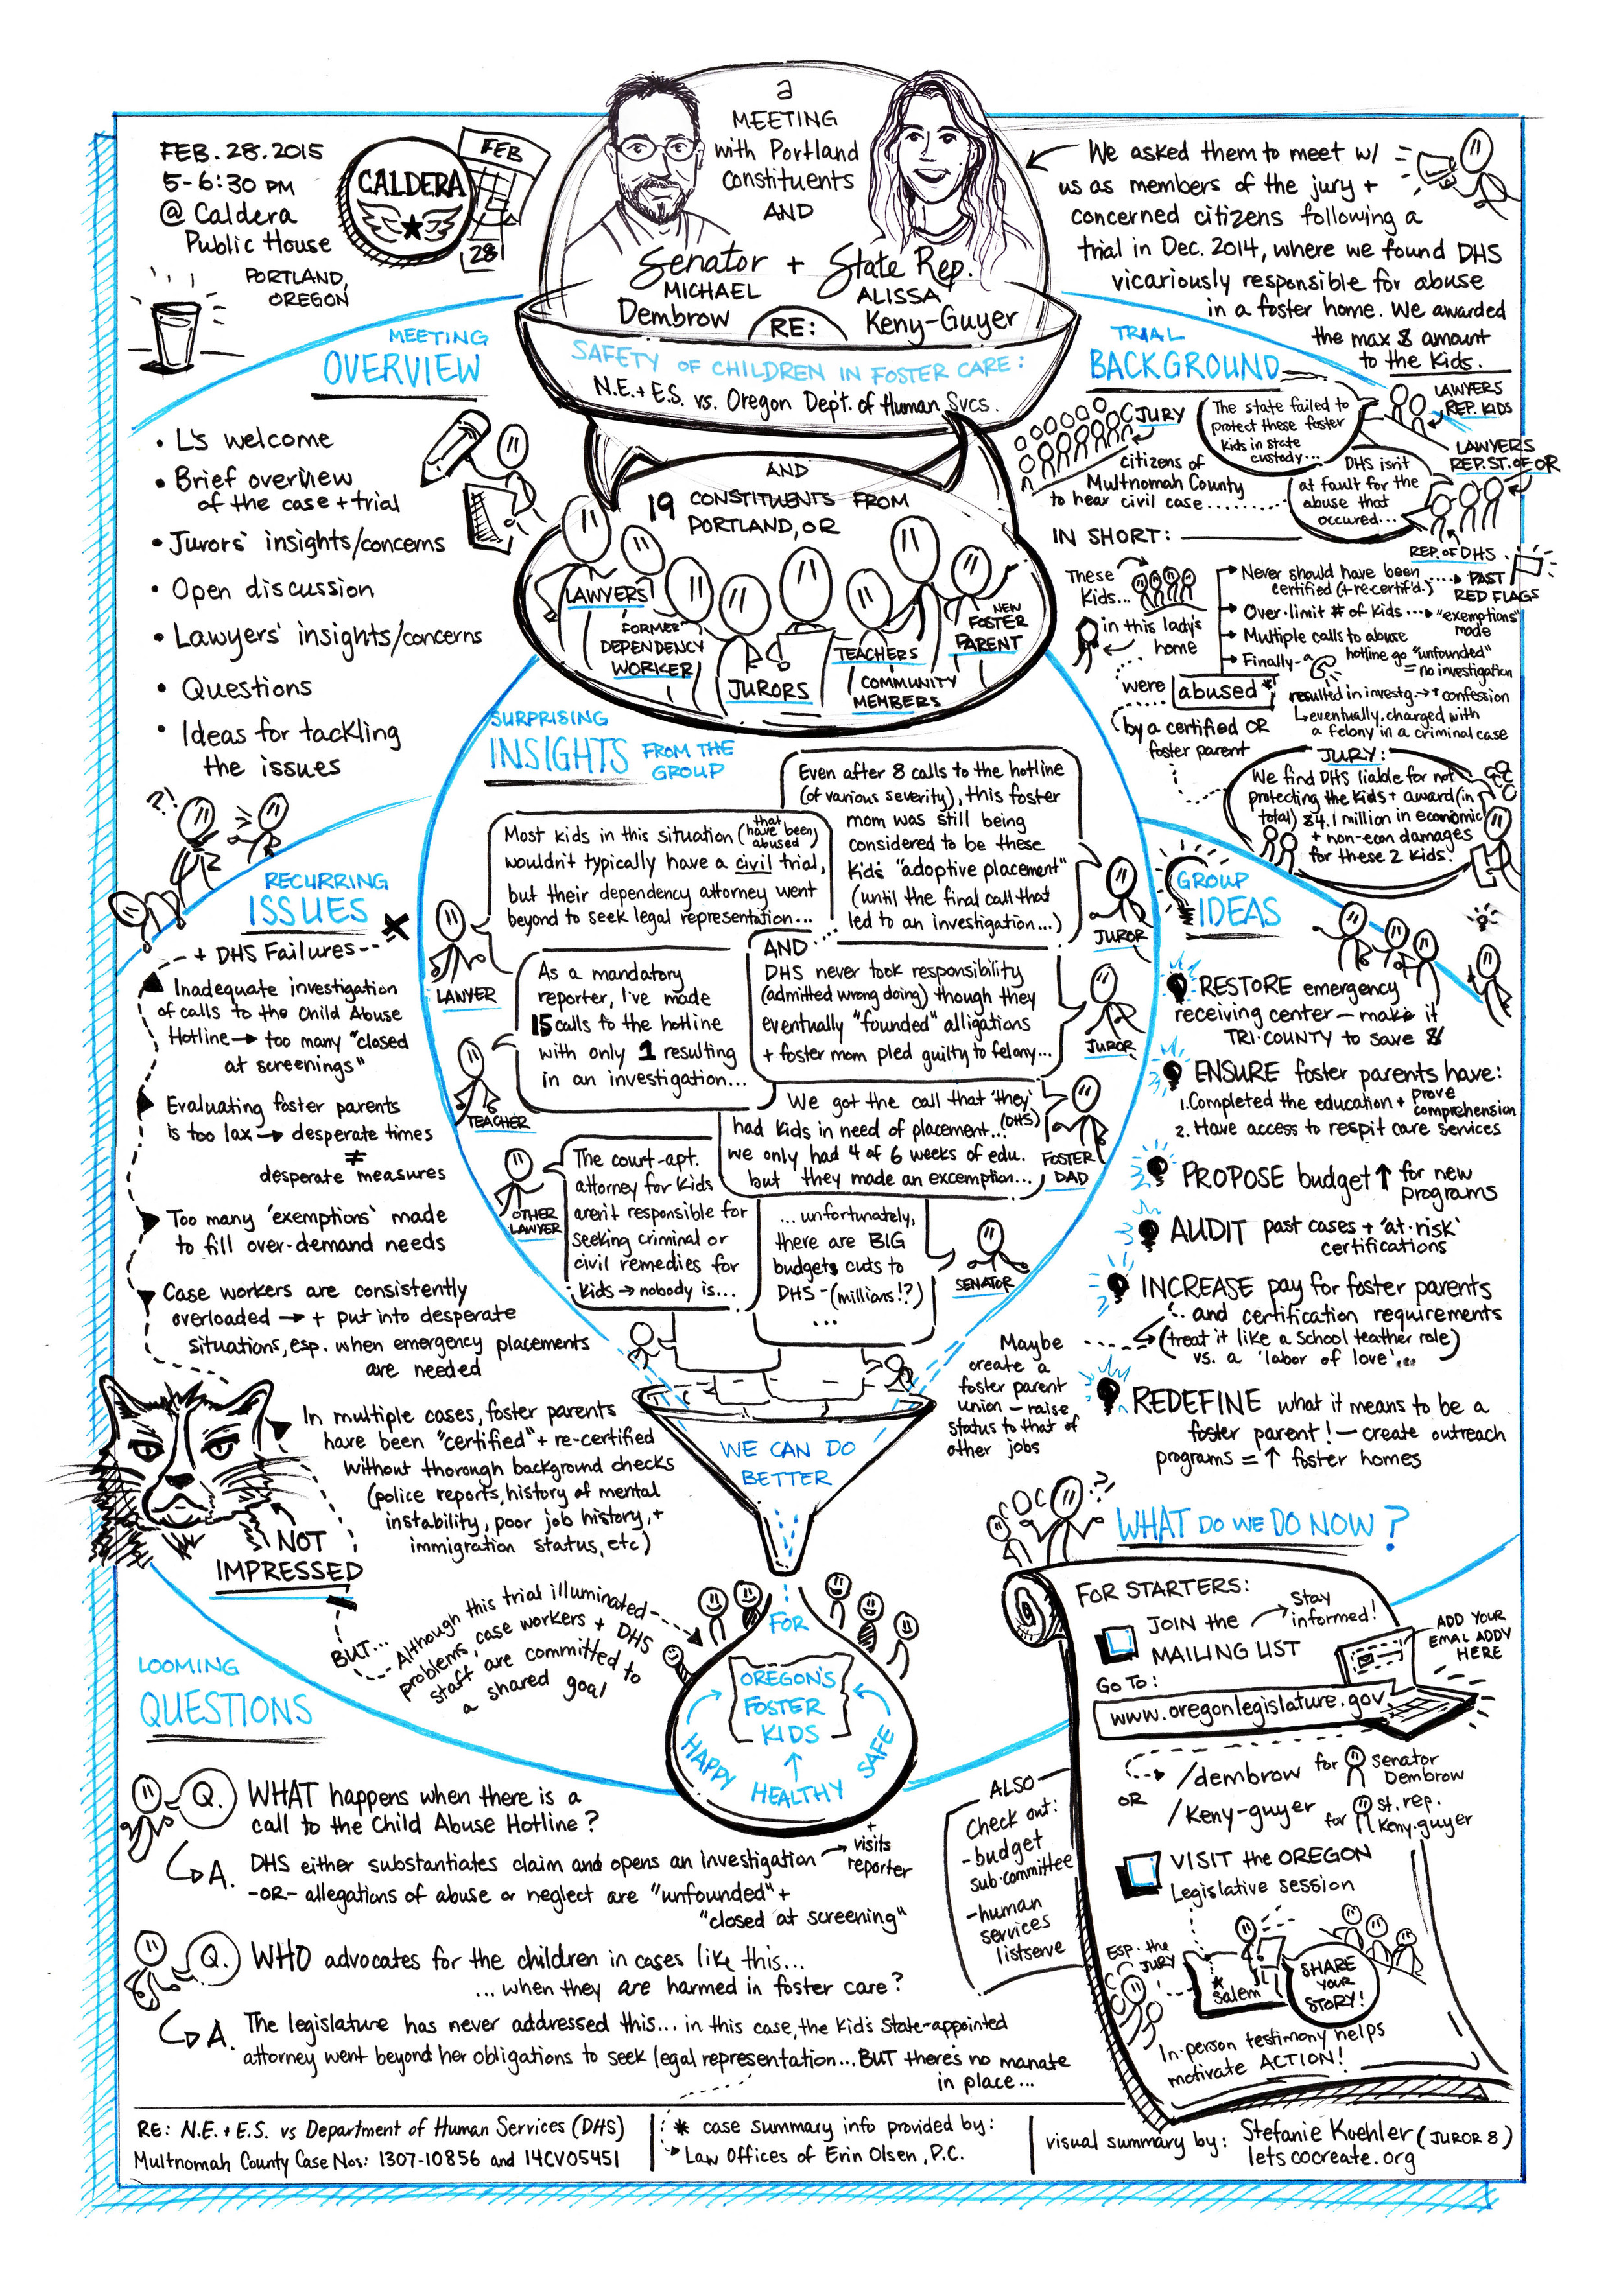 Visual testimony for State of Oregon's Heath and Human Services informational hearing